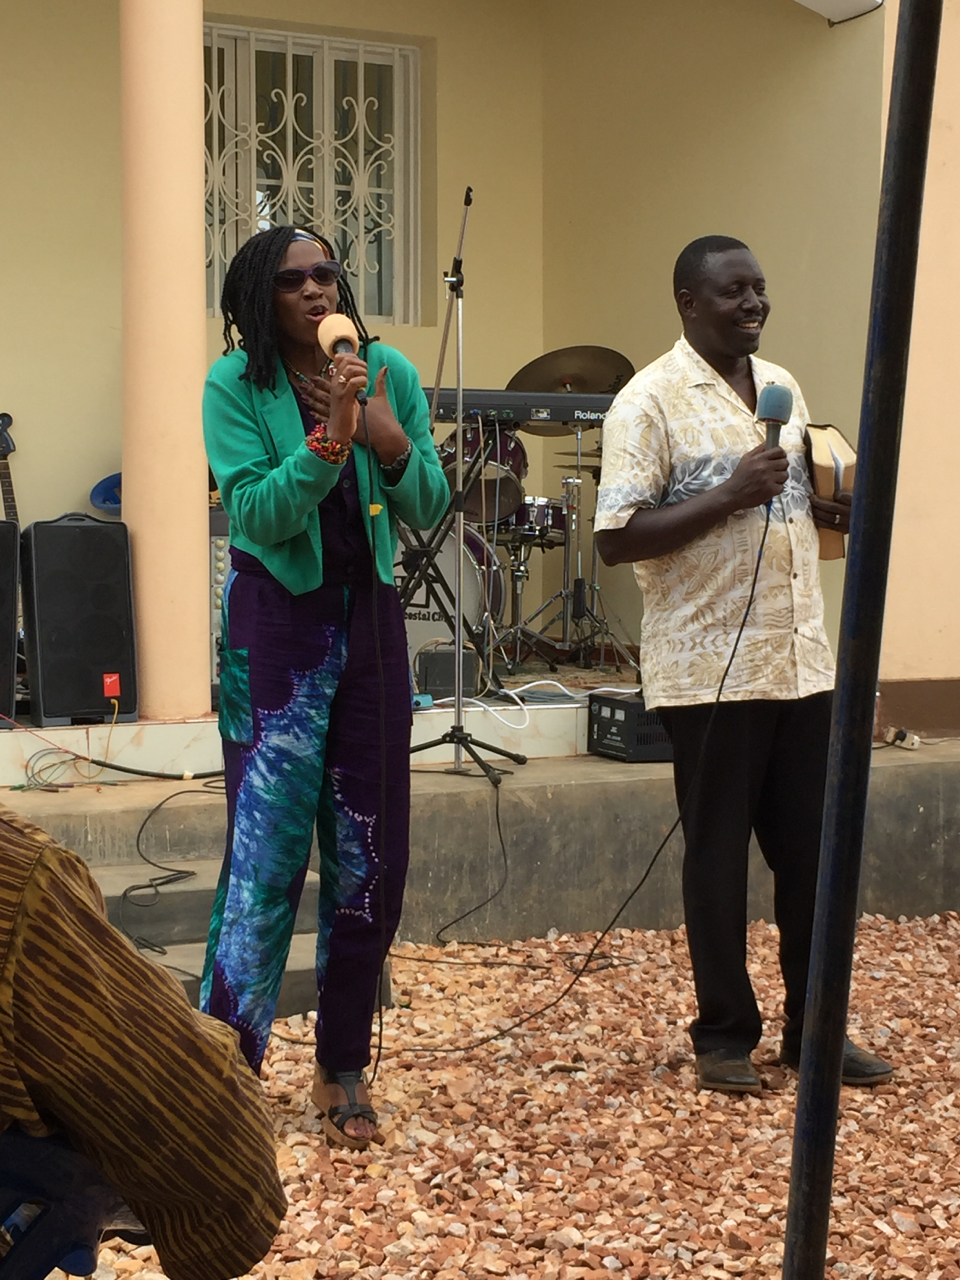 Mukarabe shares words of appreciation to God and the community